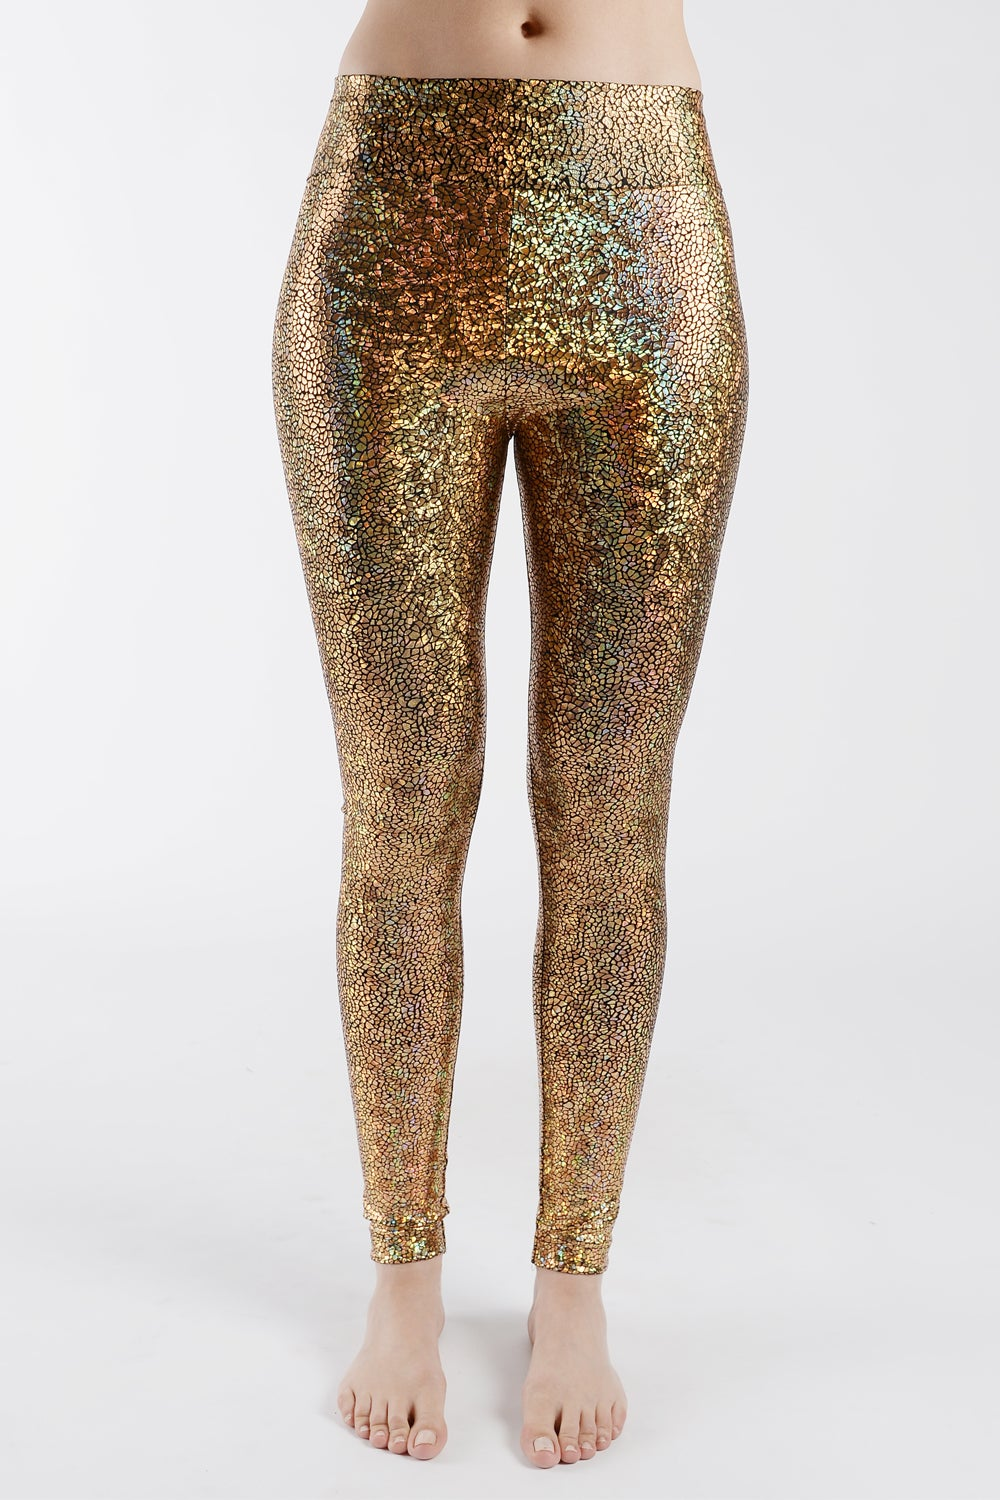 Image of Gold Disco Mermaid High Waisted Leggings